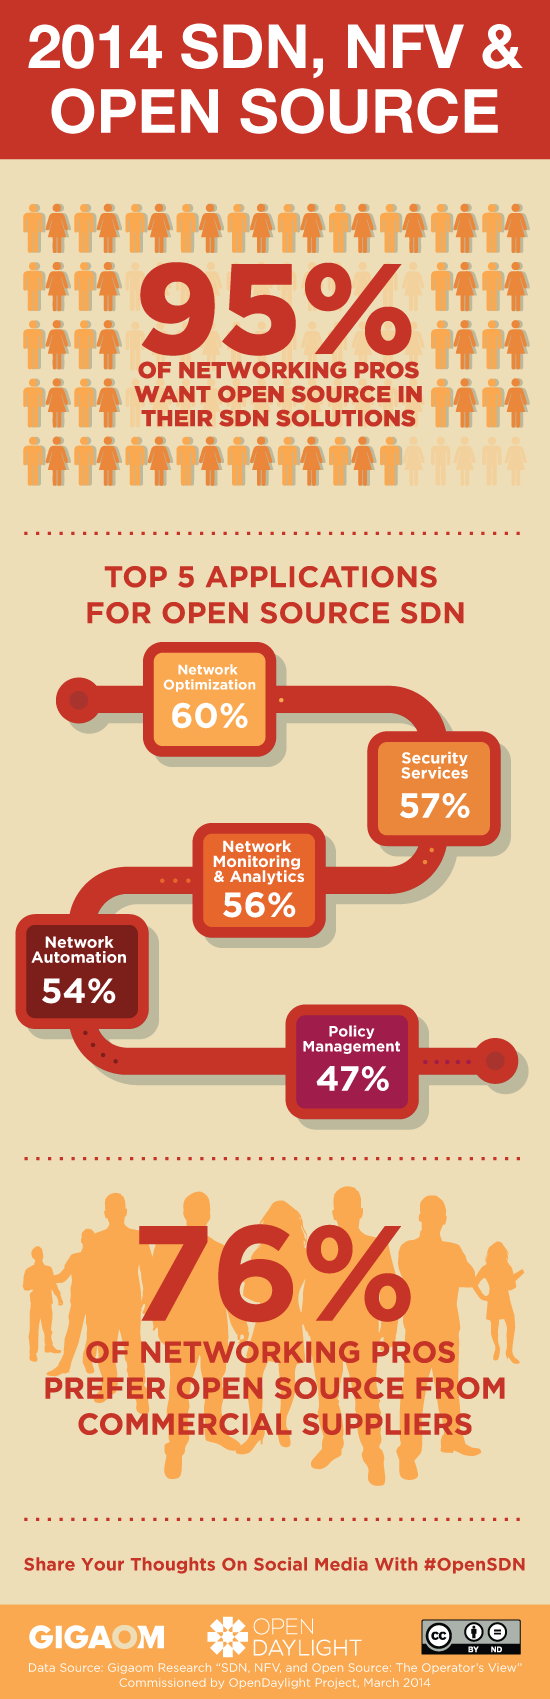 OpenDaylight infographic